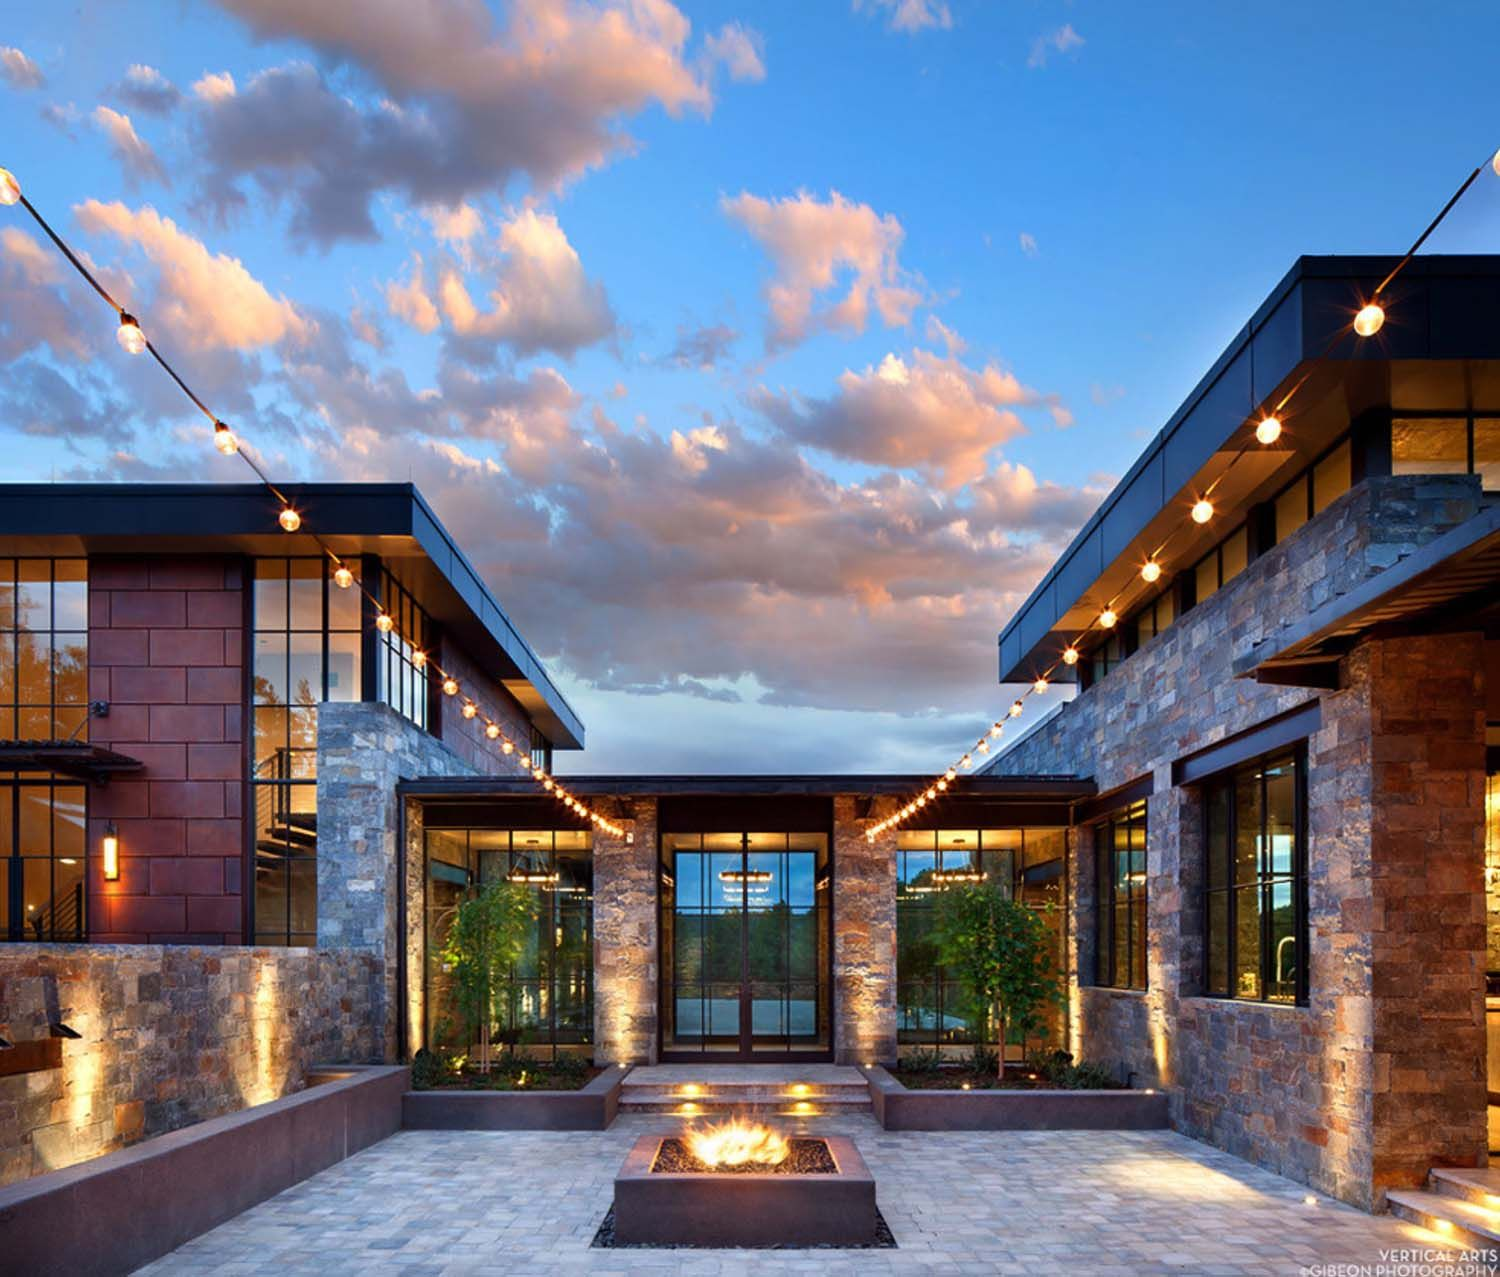 Contemporary Home Design: Remote Colorado Mountain Home Blends Modern And